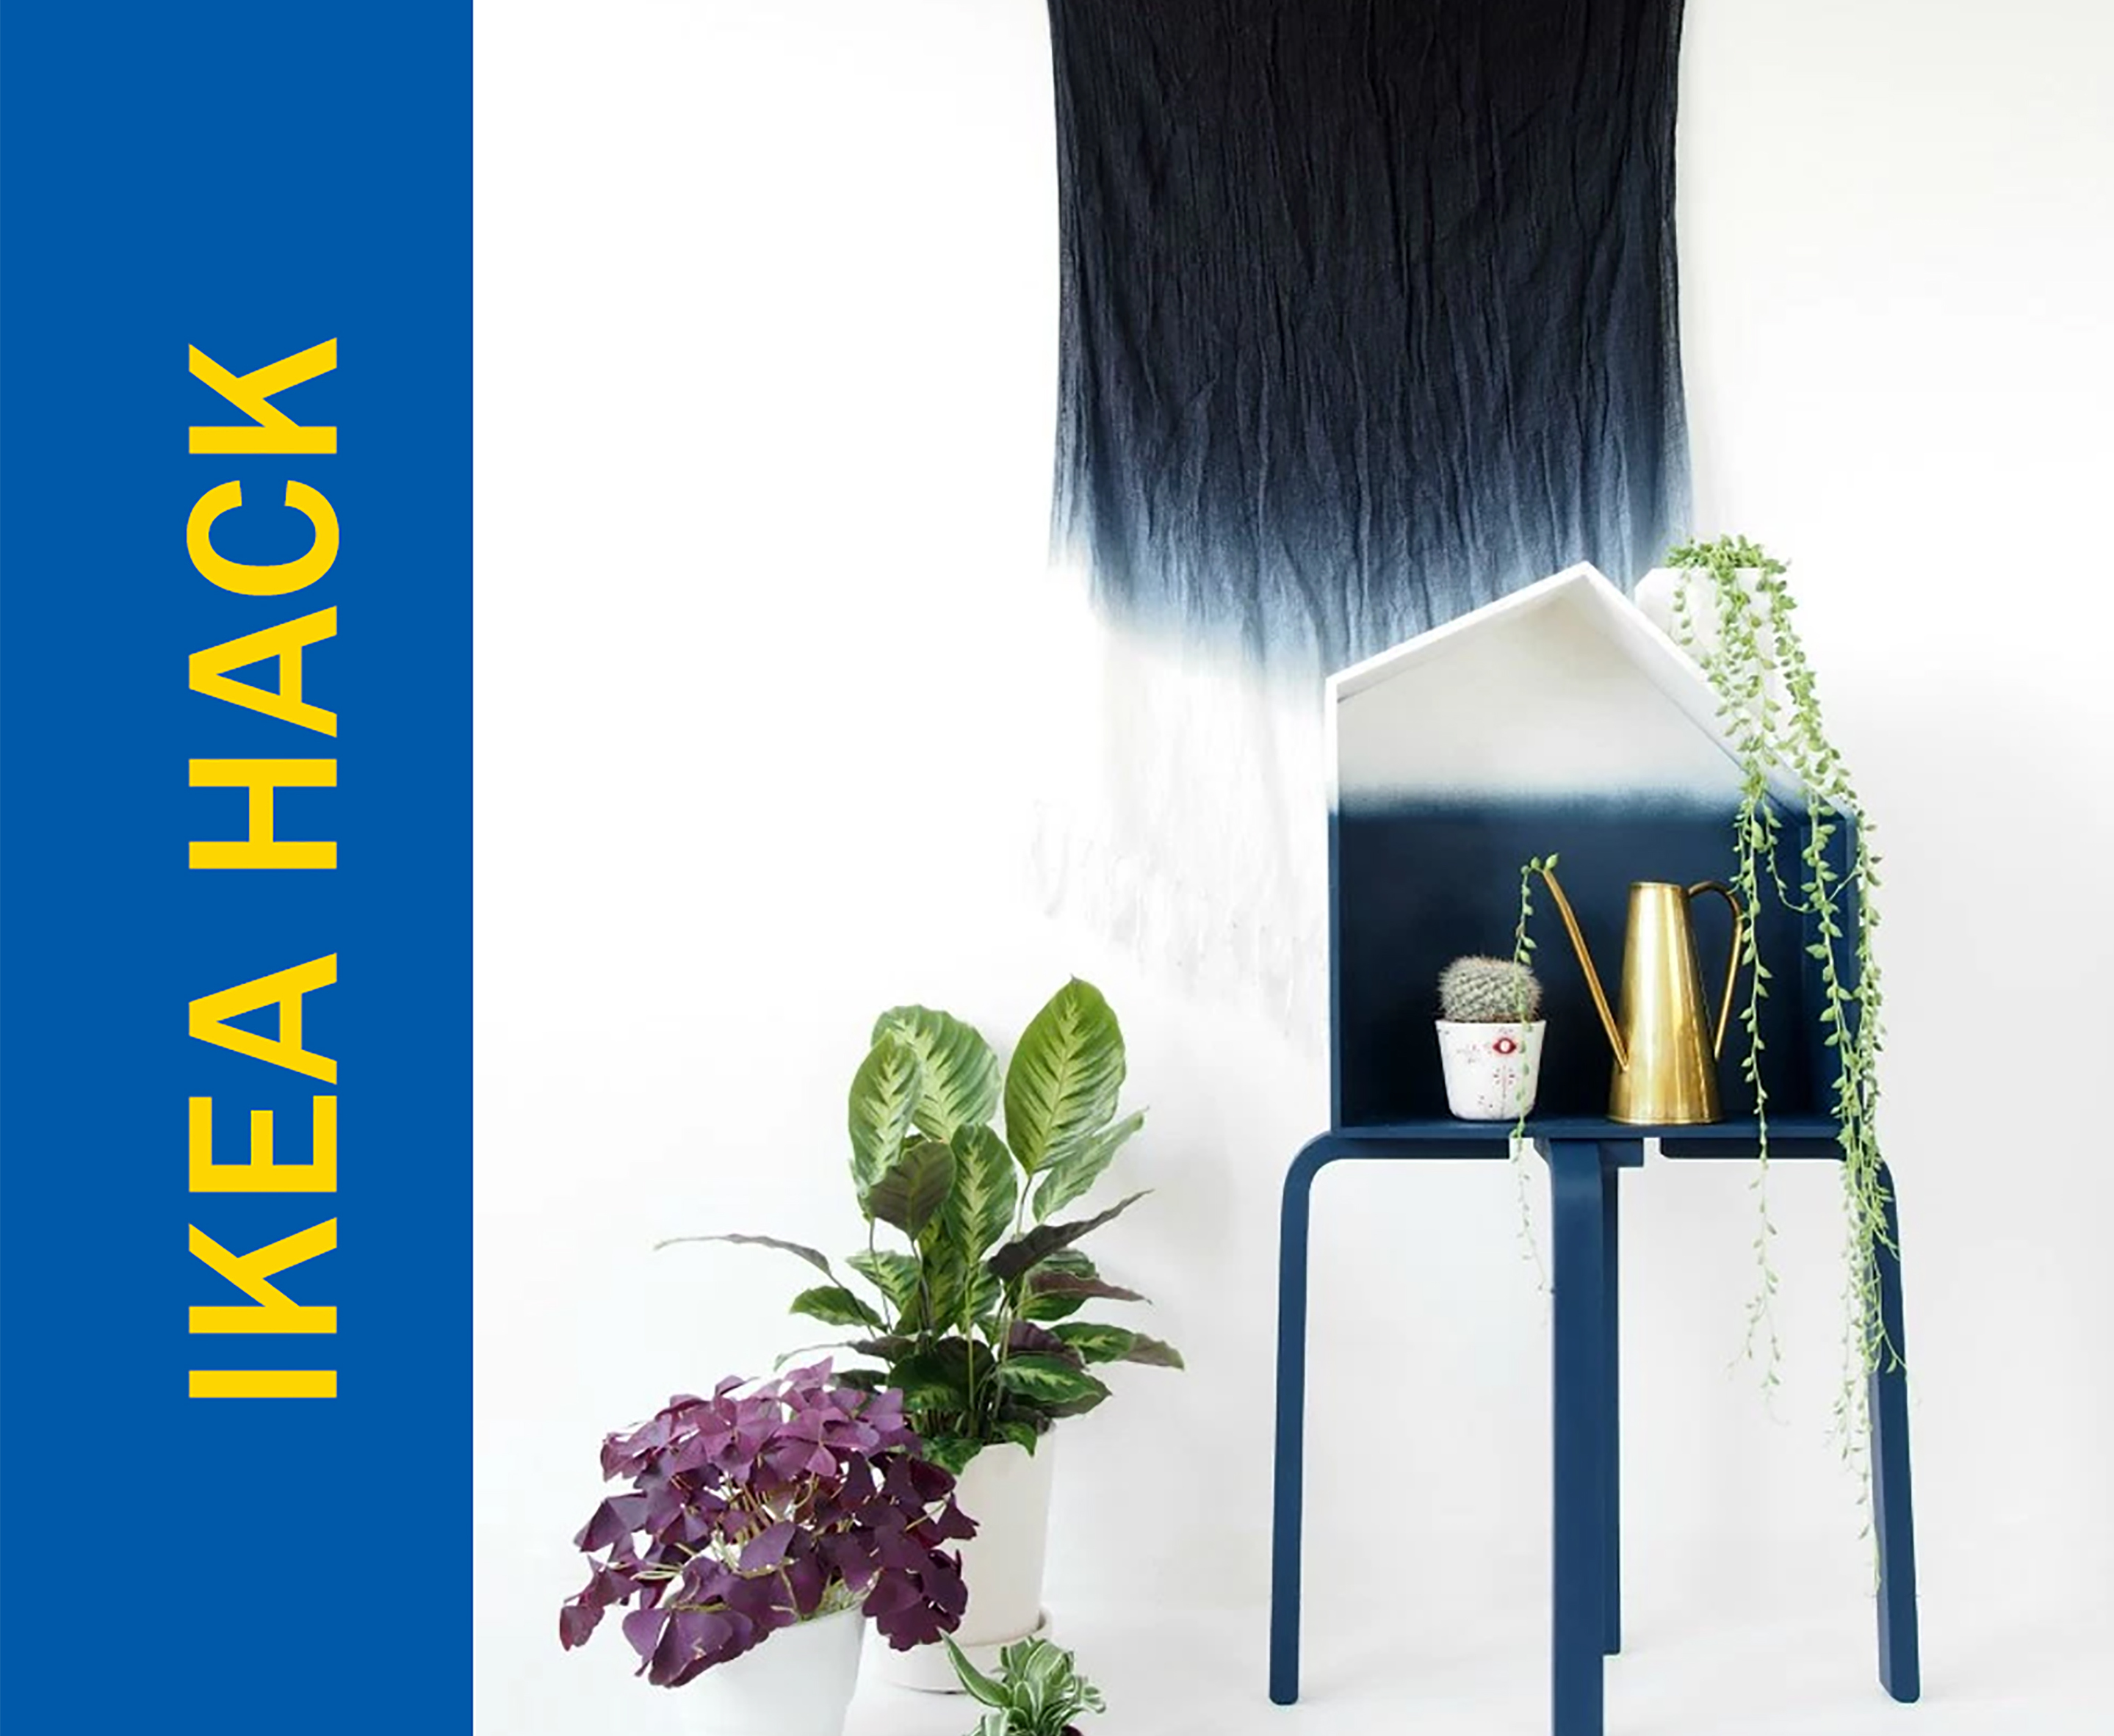 Awesome Ikea Hack of the Week: How to ombre stuff to make it look cool